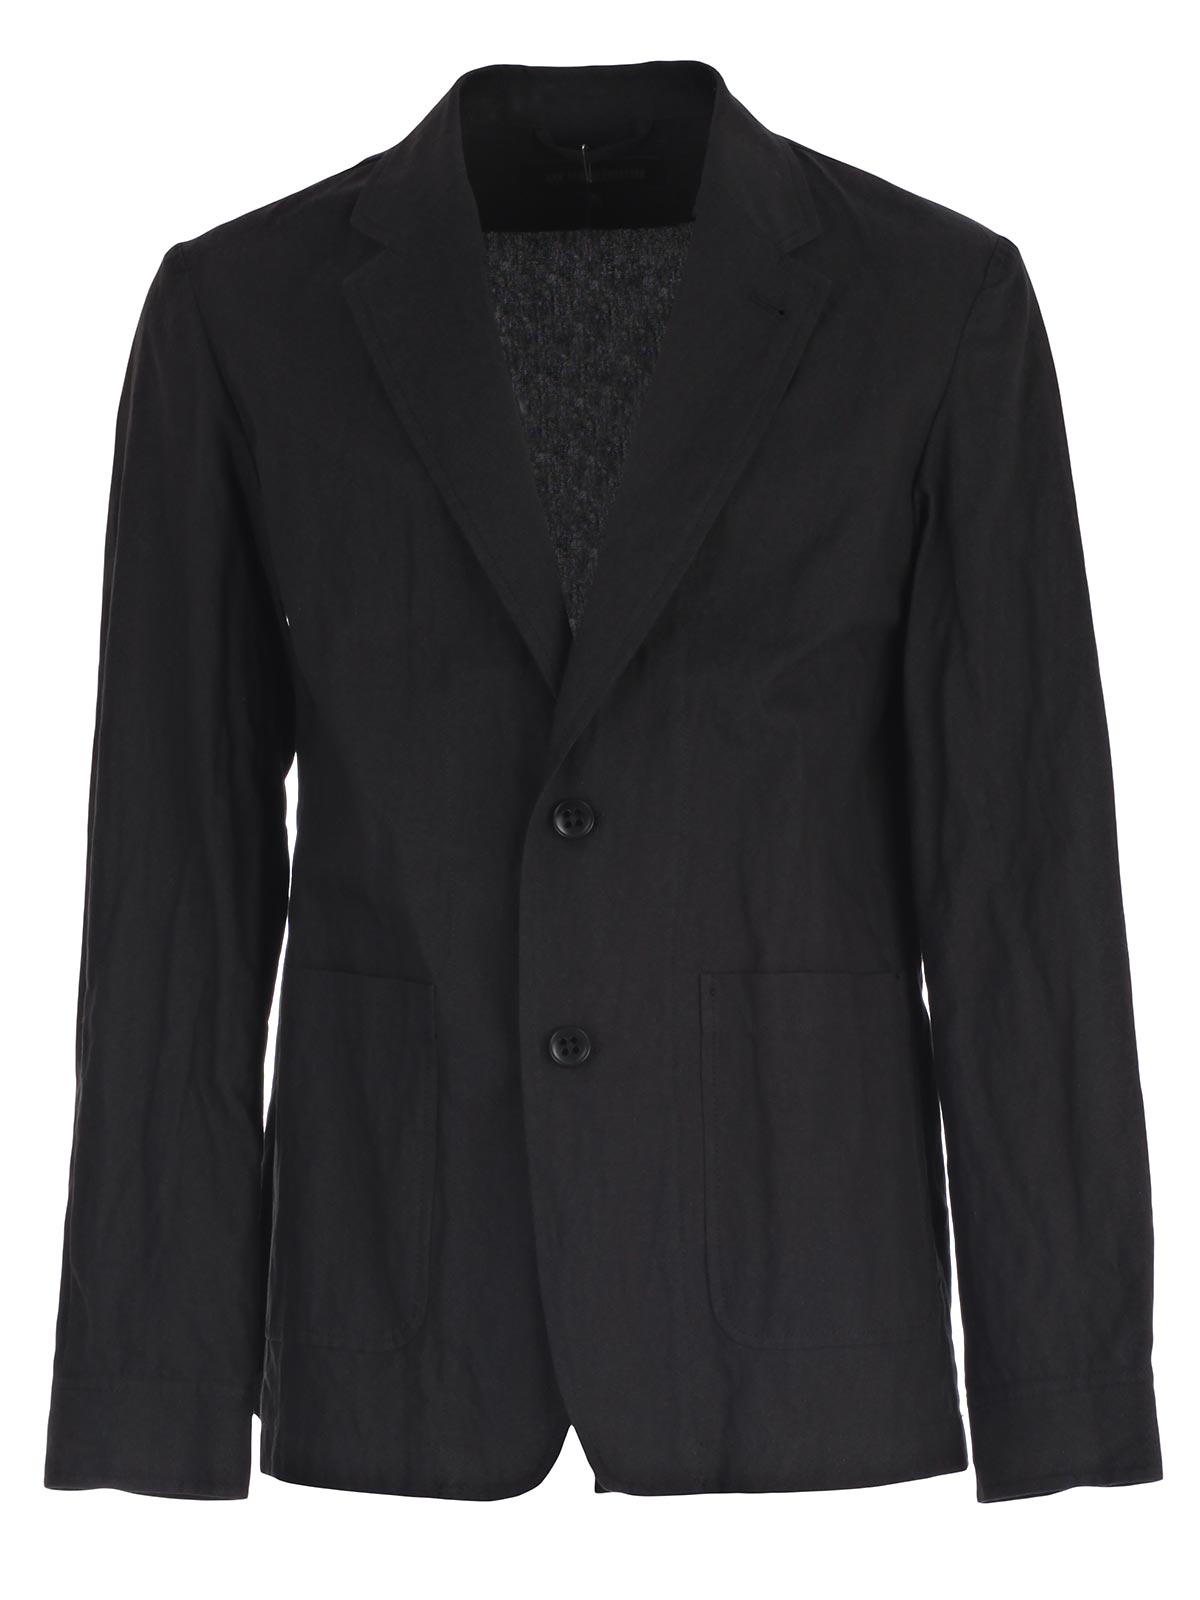 Picture of ANN DEMEULEMESTER GRISE JACKET